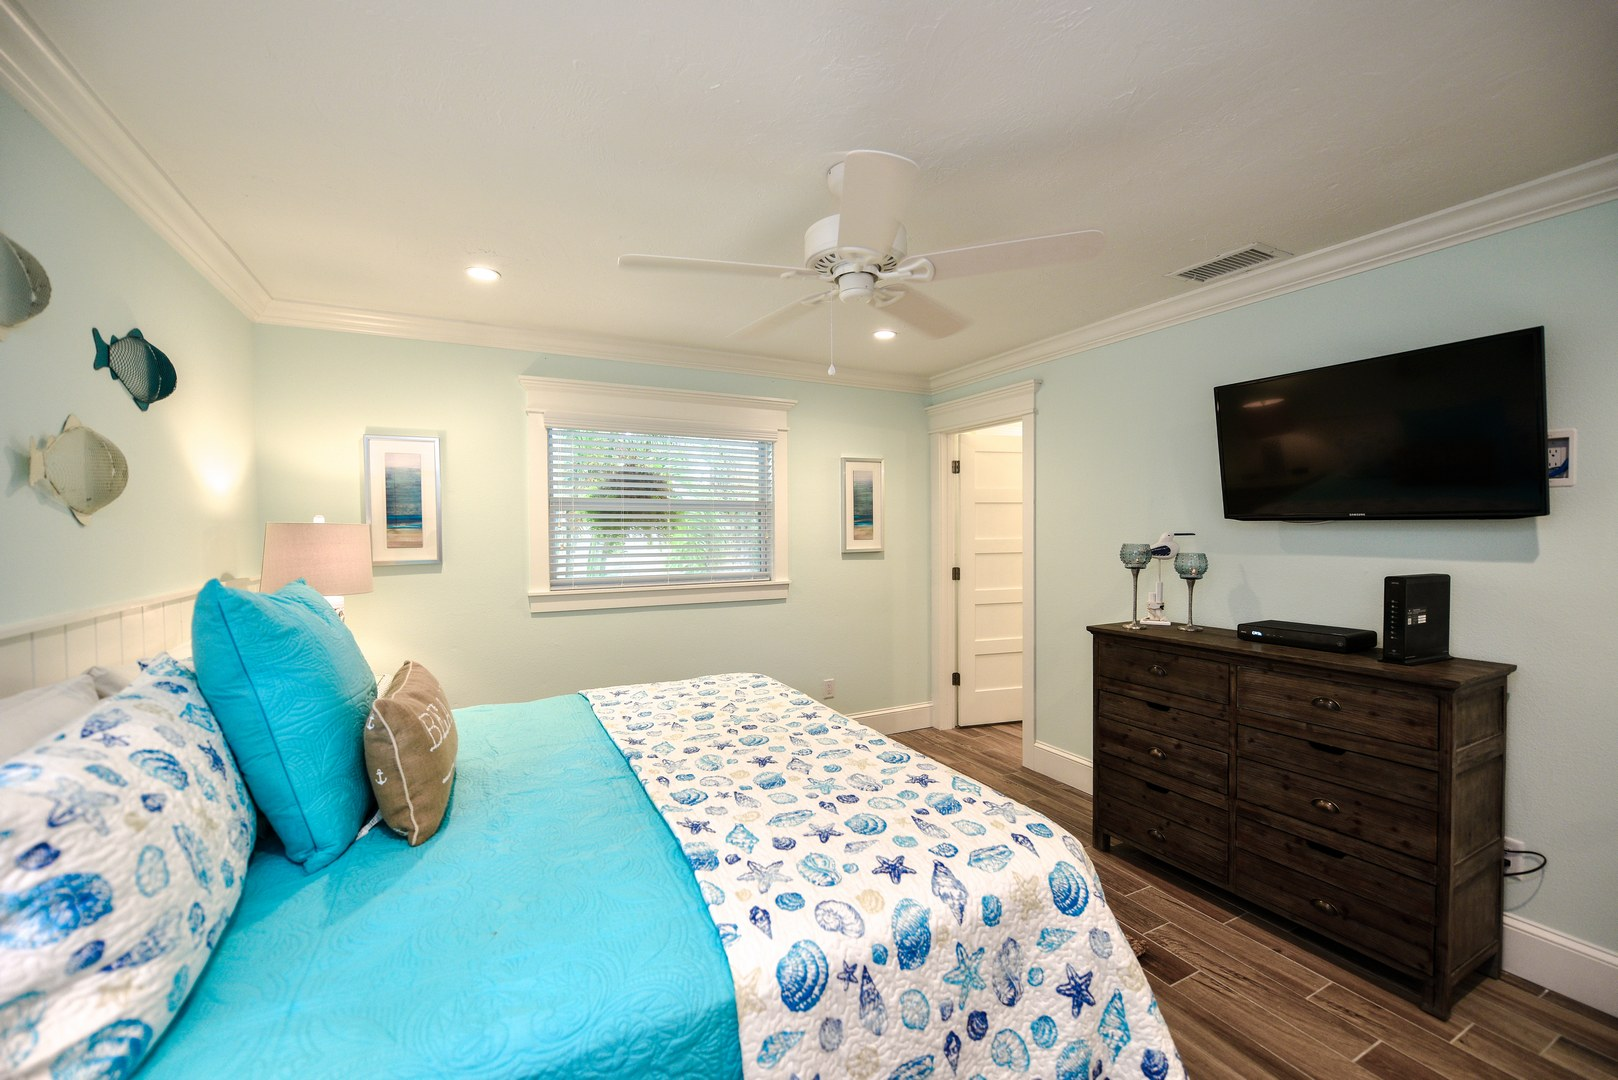 What a Master Bedroom! Plenty of Space